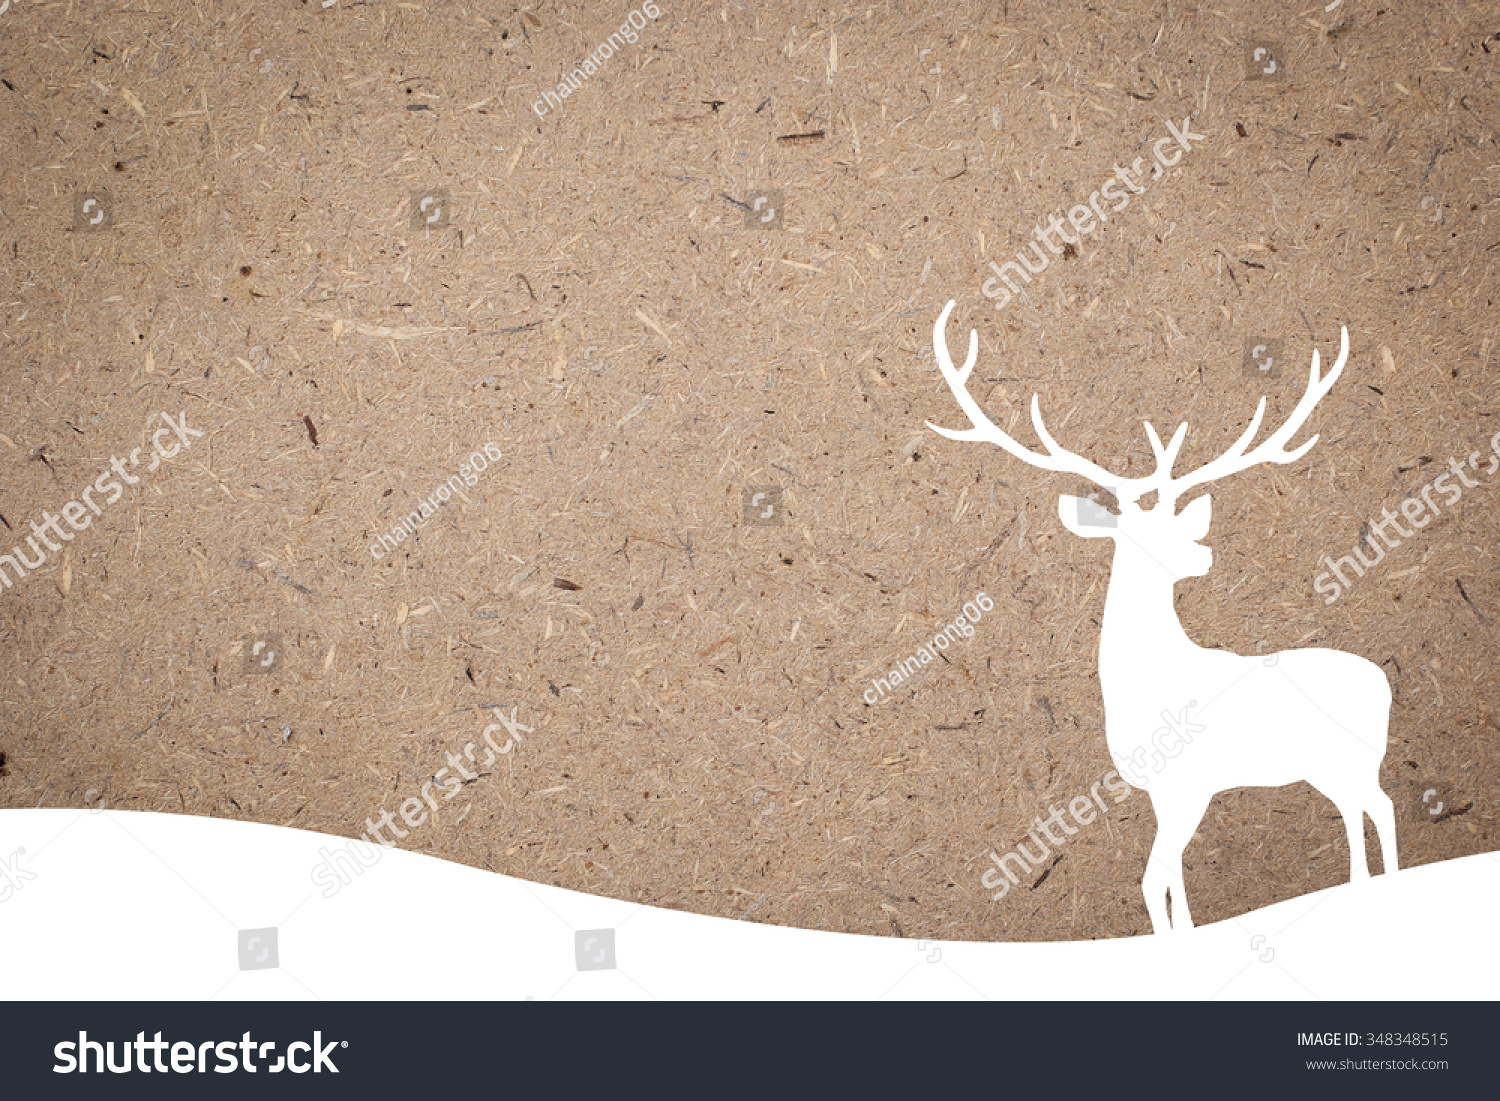 silhouette white reindeer over cork board backgrounds for Christmas celebration decorate concept xmas backdrop seasonal merry Christmas festival and new year wallpaper concept.silhouette with path